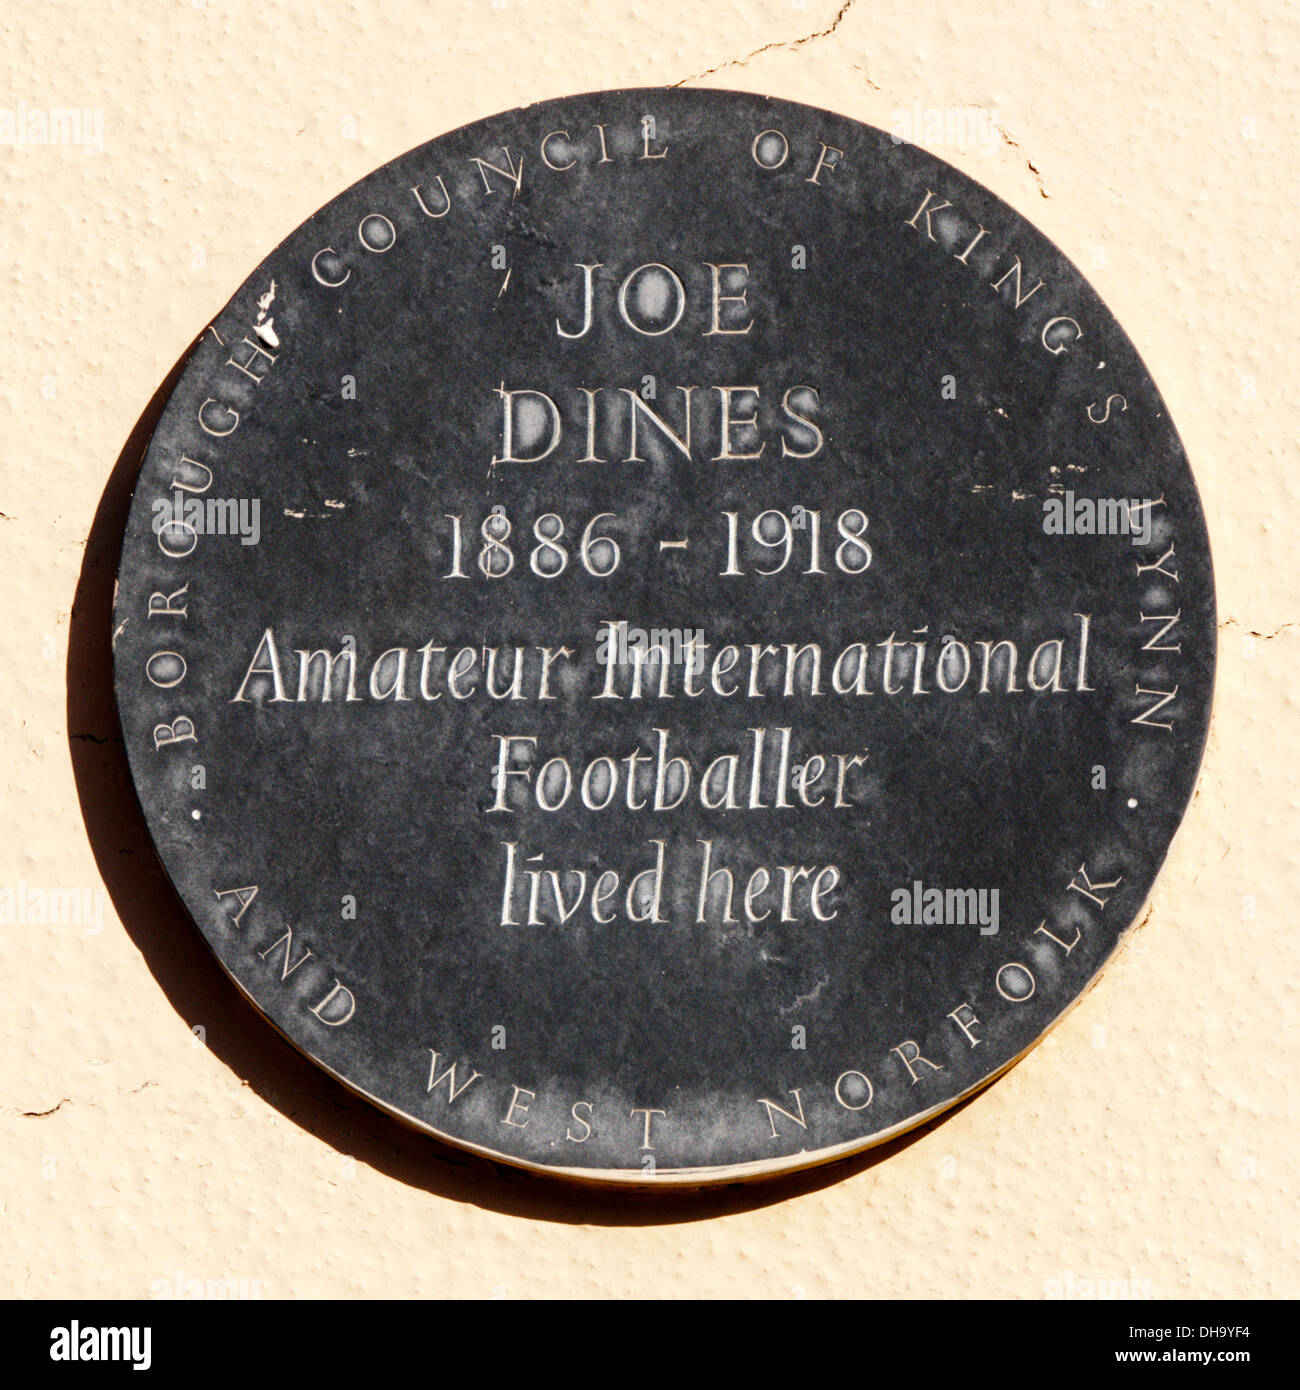 A plaque marks the house in King's Lynn lived in by the amateur international footballer Joe Dines. - Stock Image